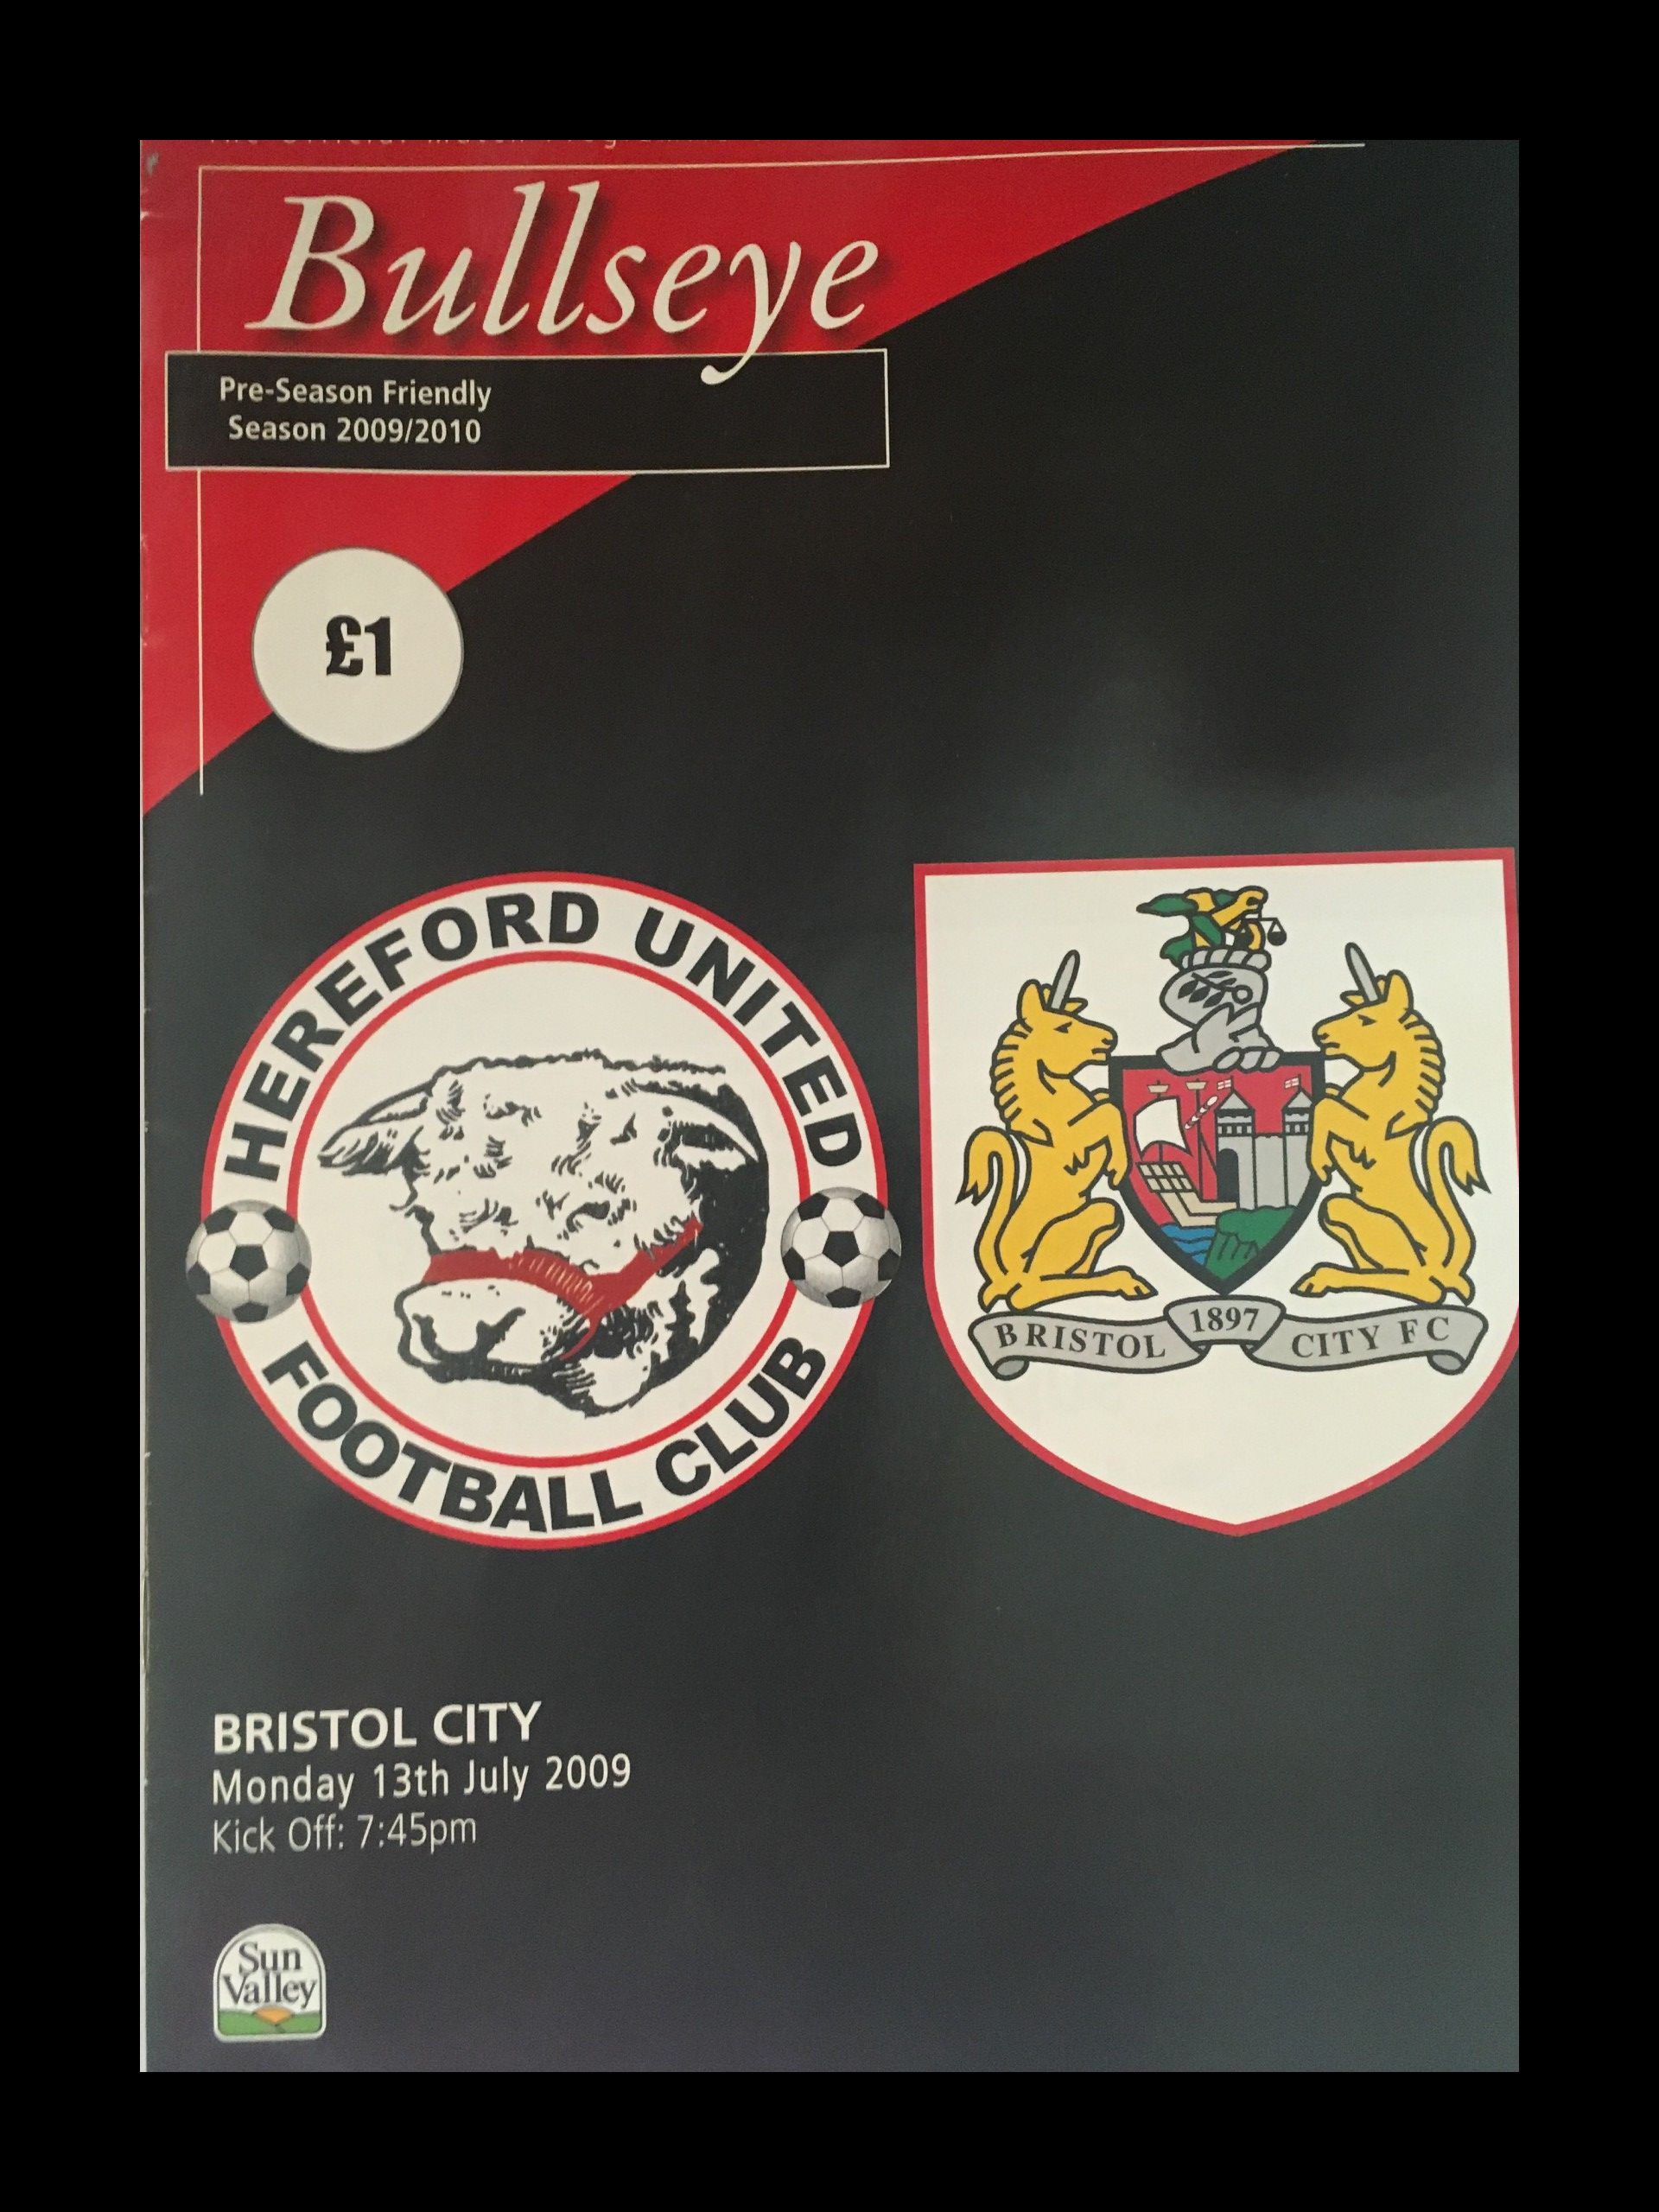 Hereford United v Bristol City 13-07-2009 Programme